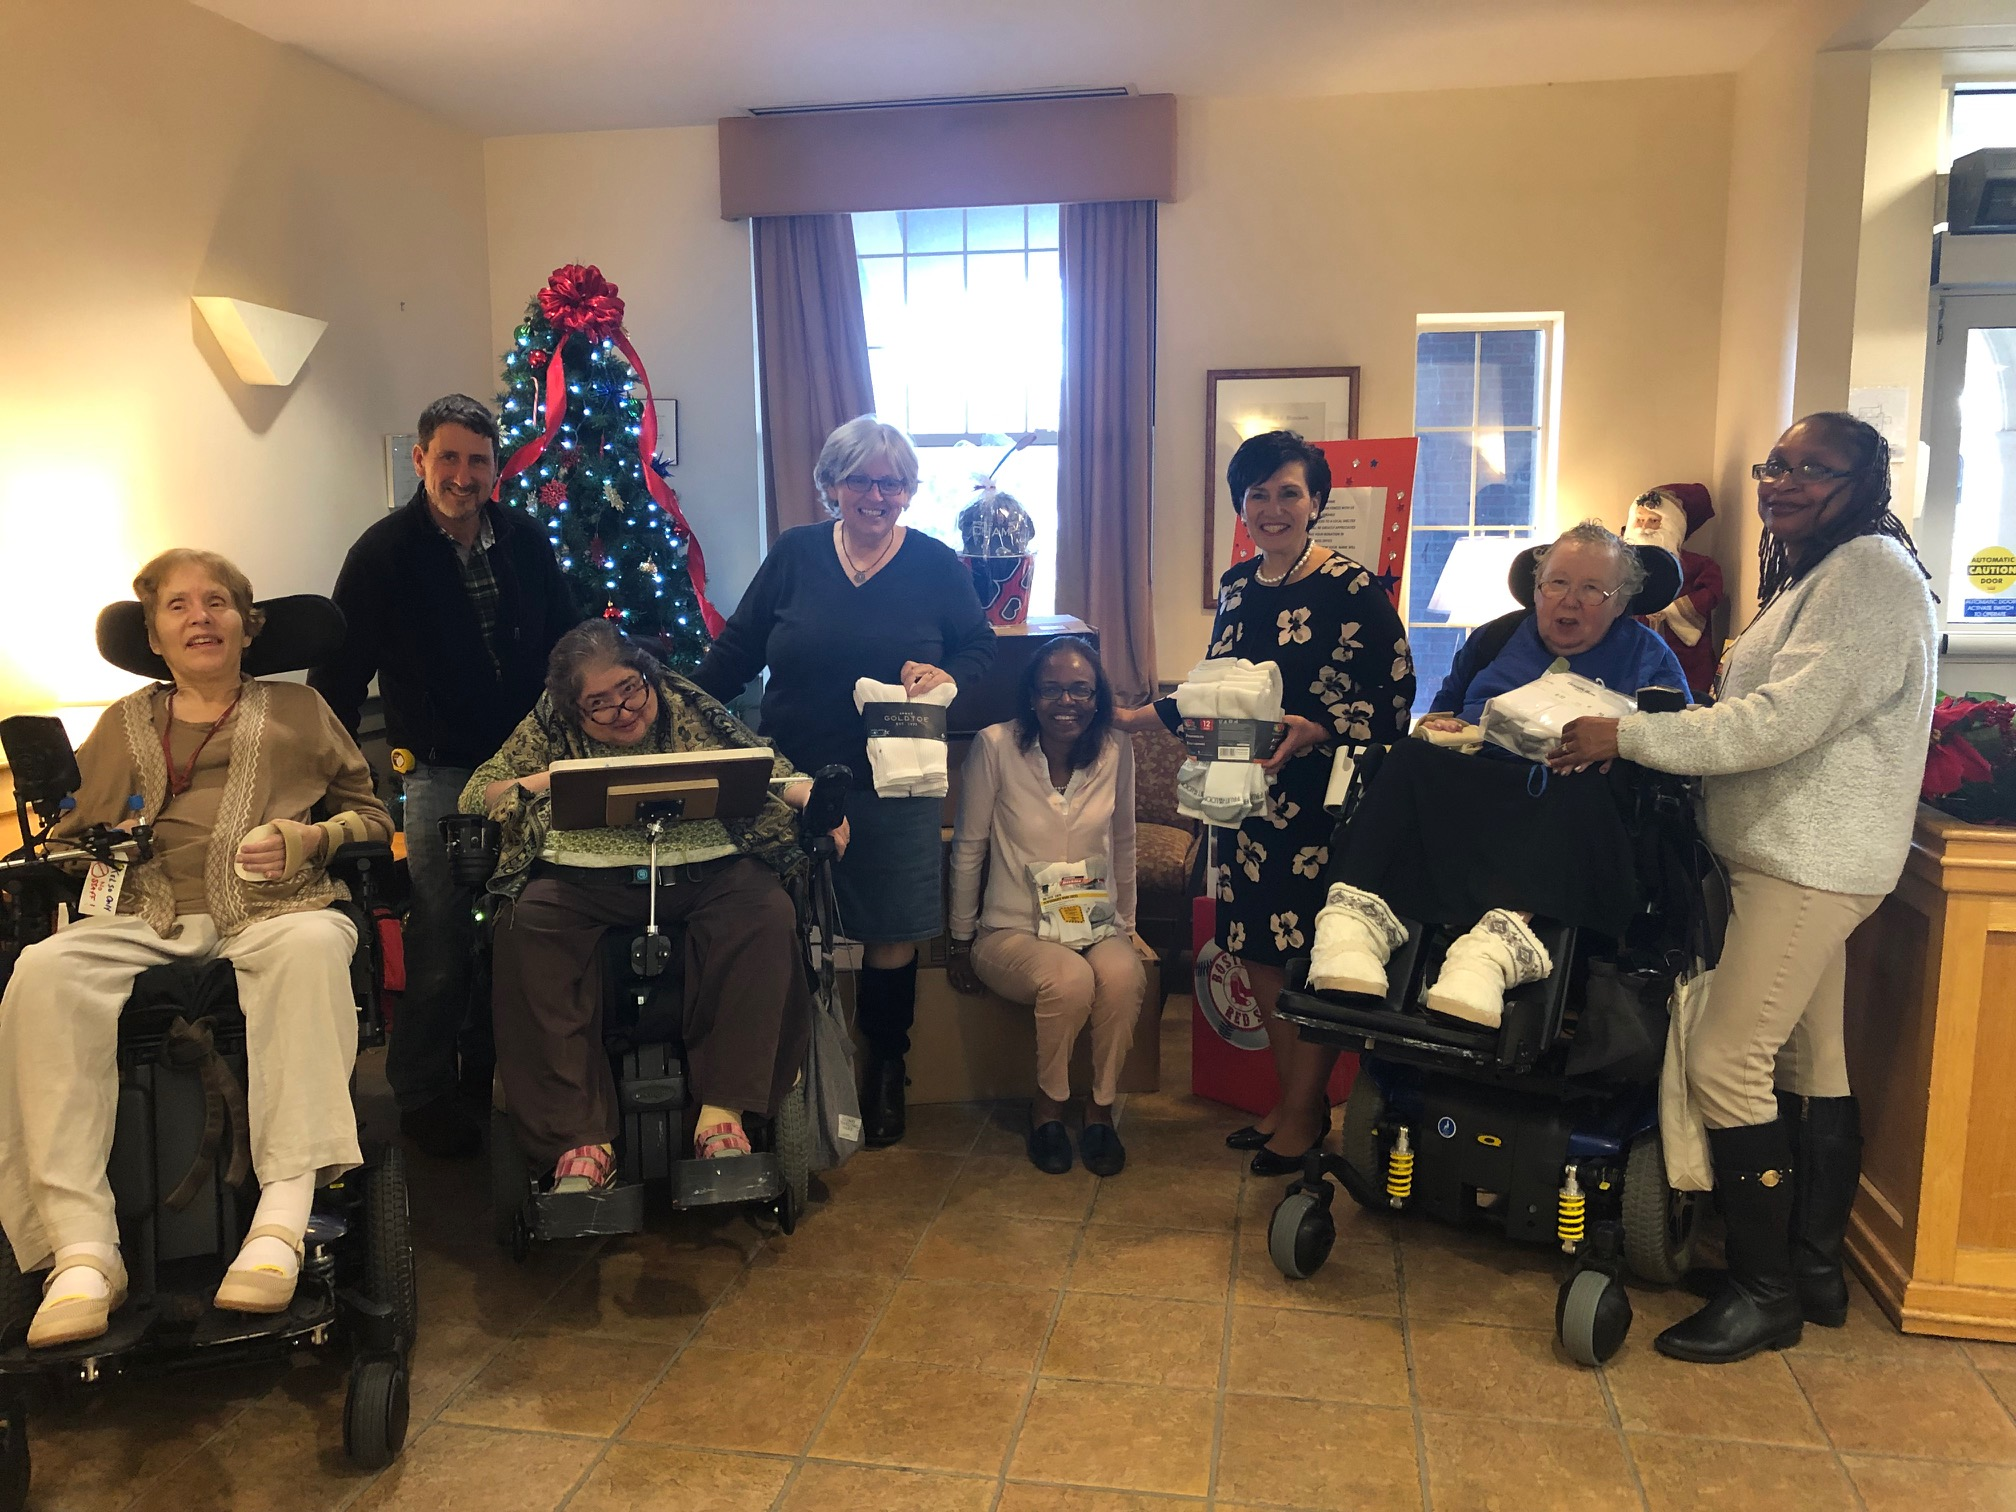 The Boston Home residents, staff and families donated over 600 pairs of white new socks to the Bay Cove Homeless Shelter